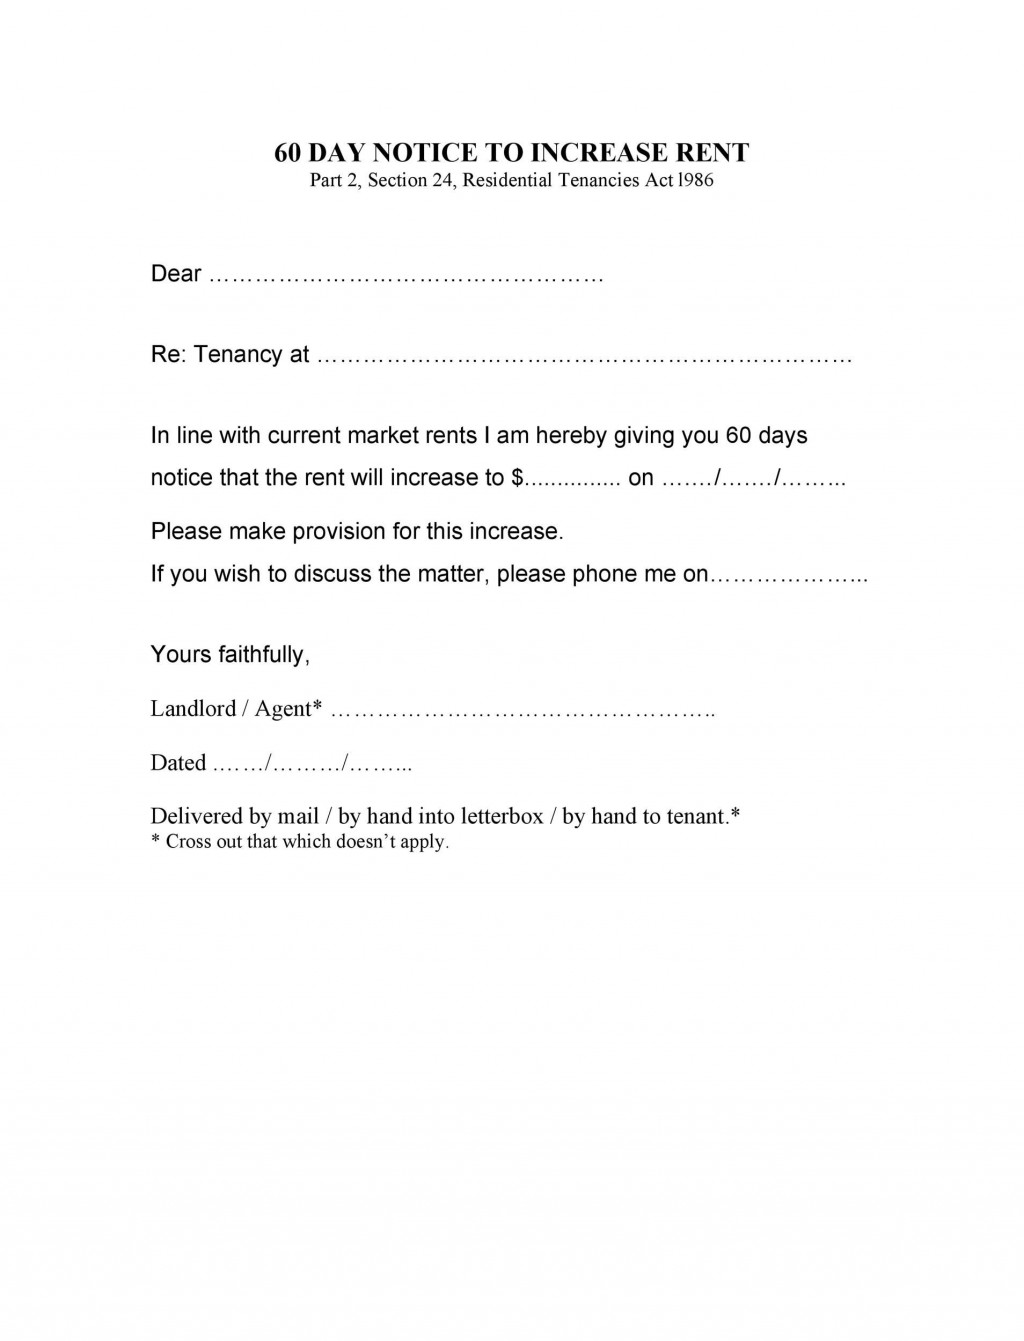 007 Imposing 60 Day Notice Template Highest Clarity  To Landlord Move Out Letter Apartment LeaseLarge